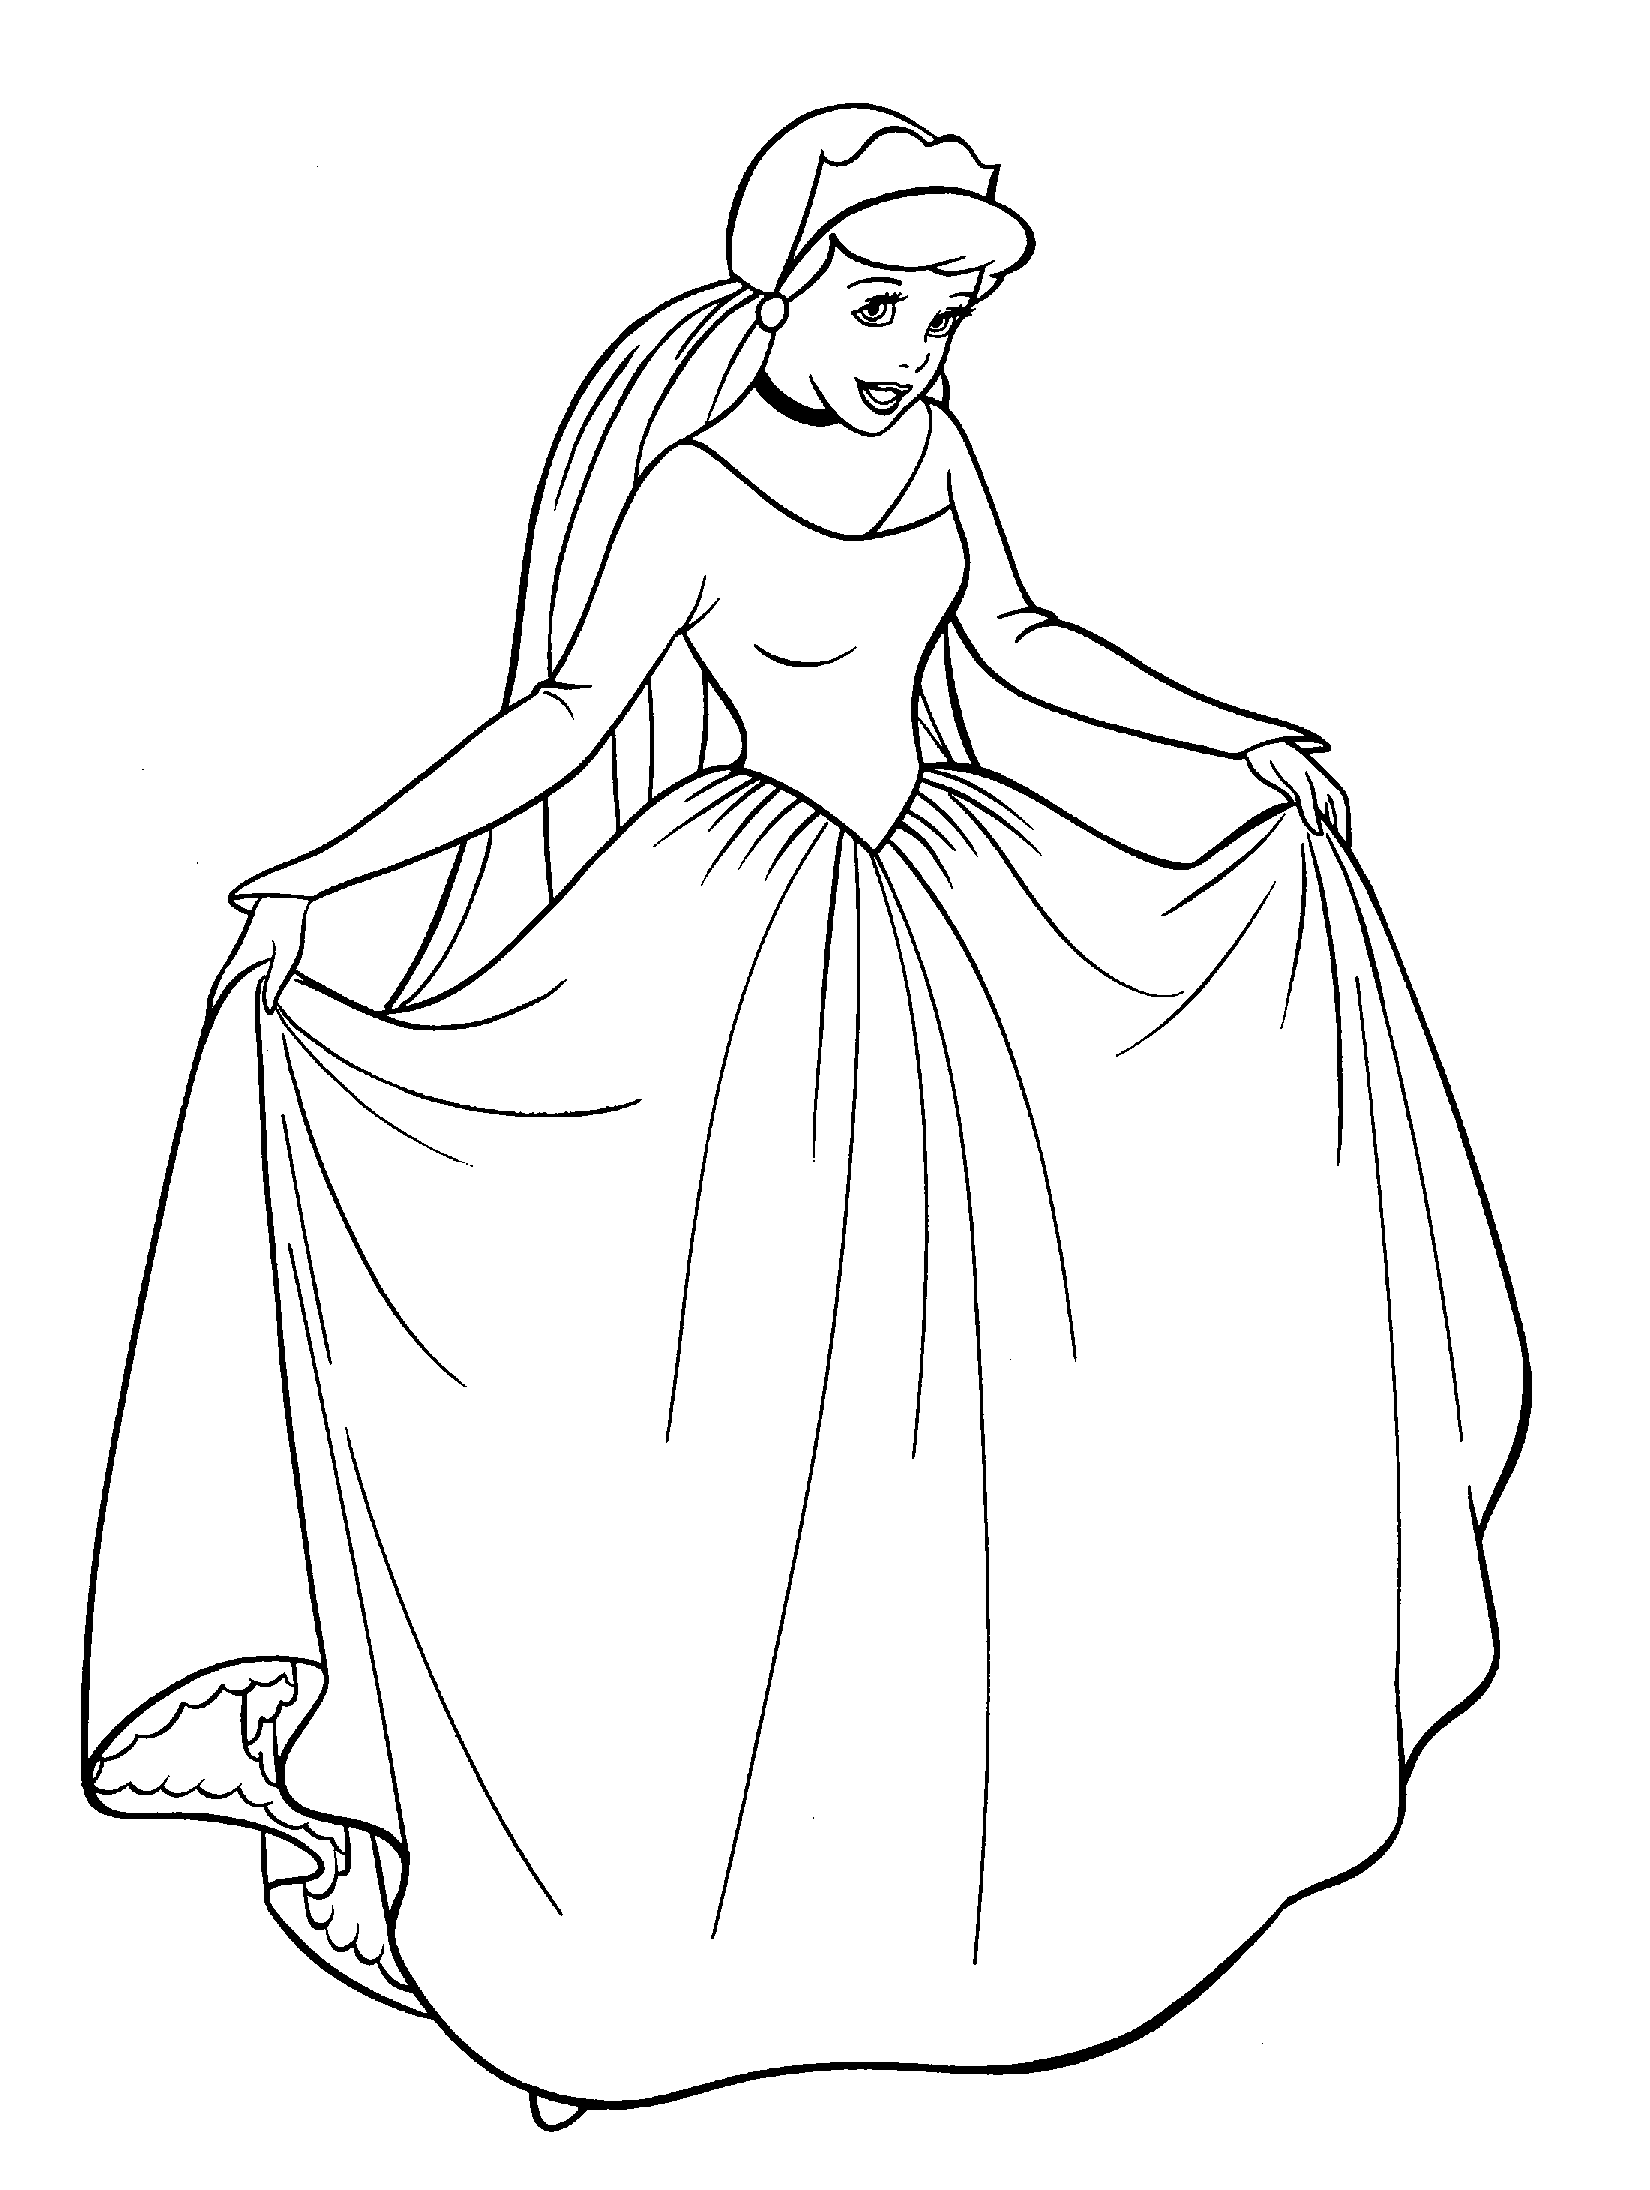 Free Printable Cinderella Coloring Pages For Kids Coloring Pages To Print And Color